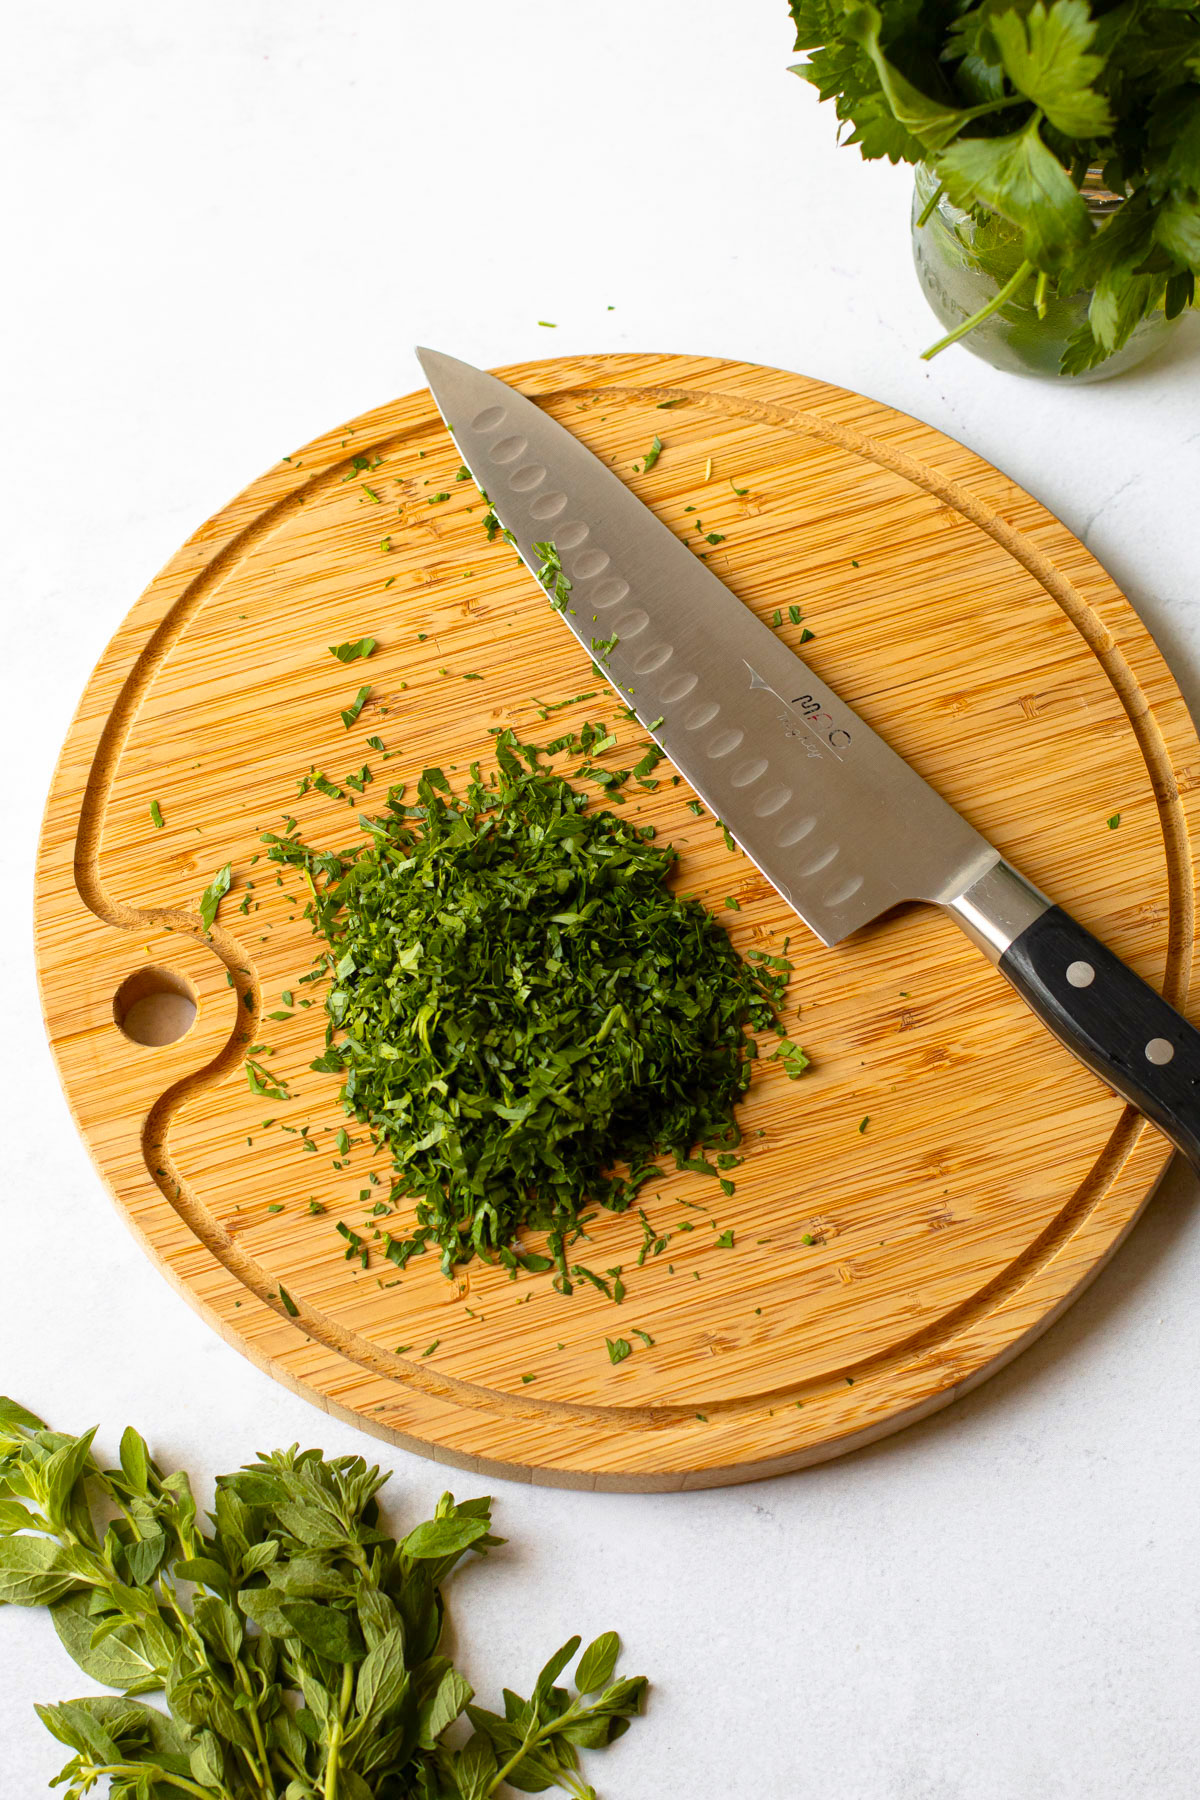 Chopping up herbs for chimichurri.